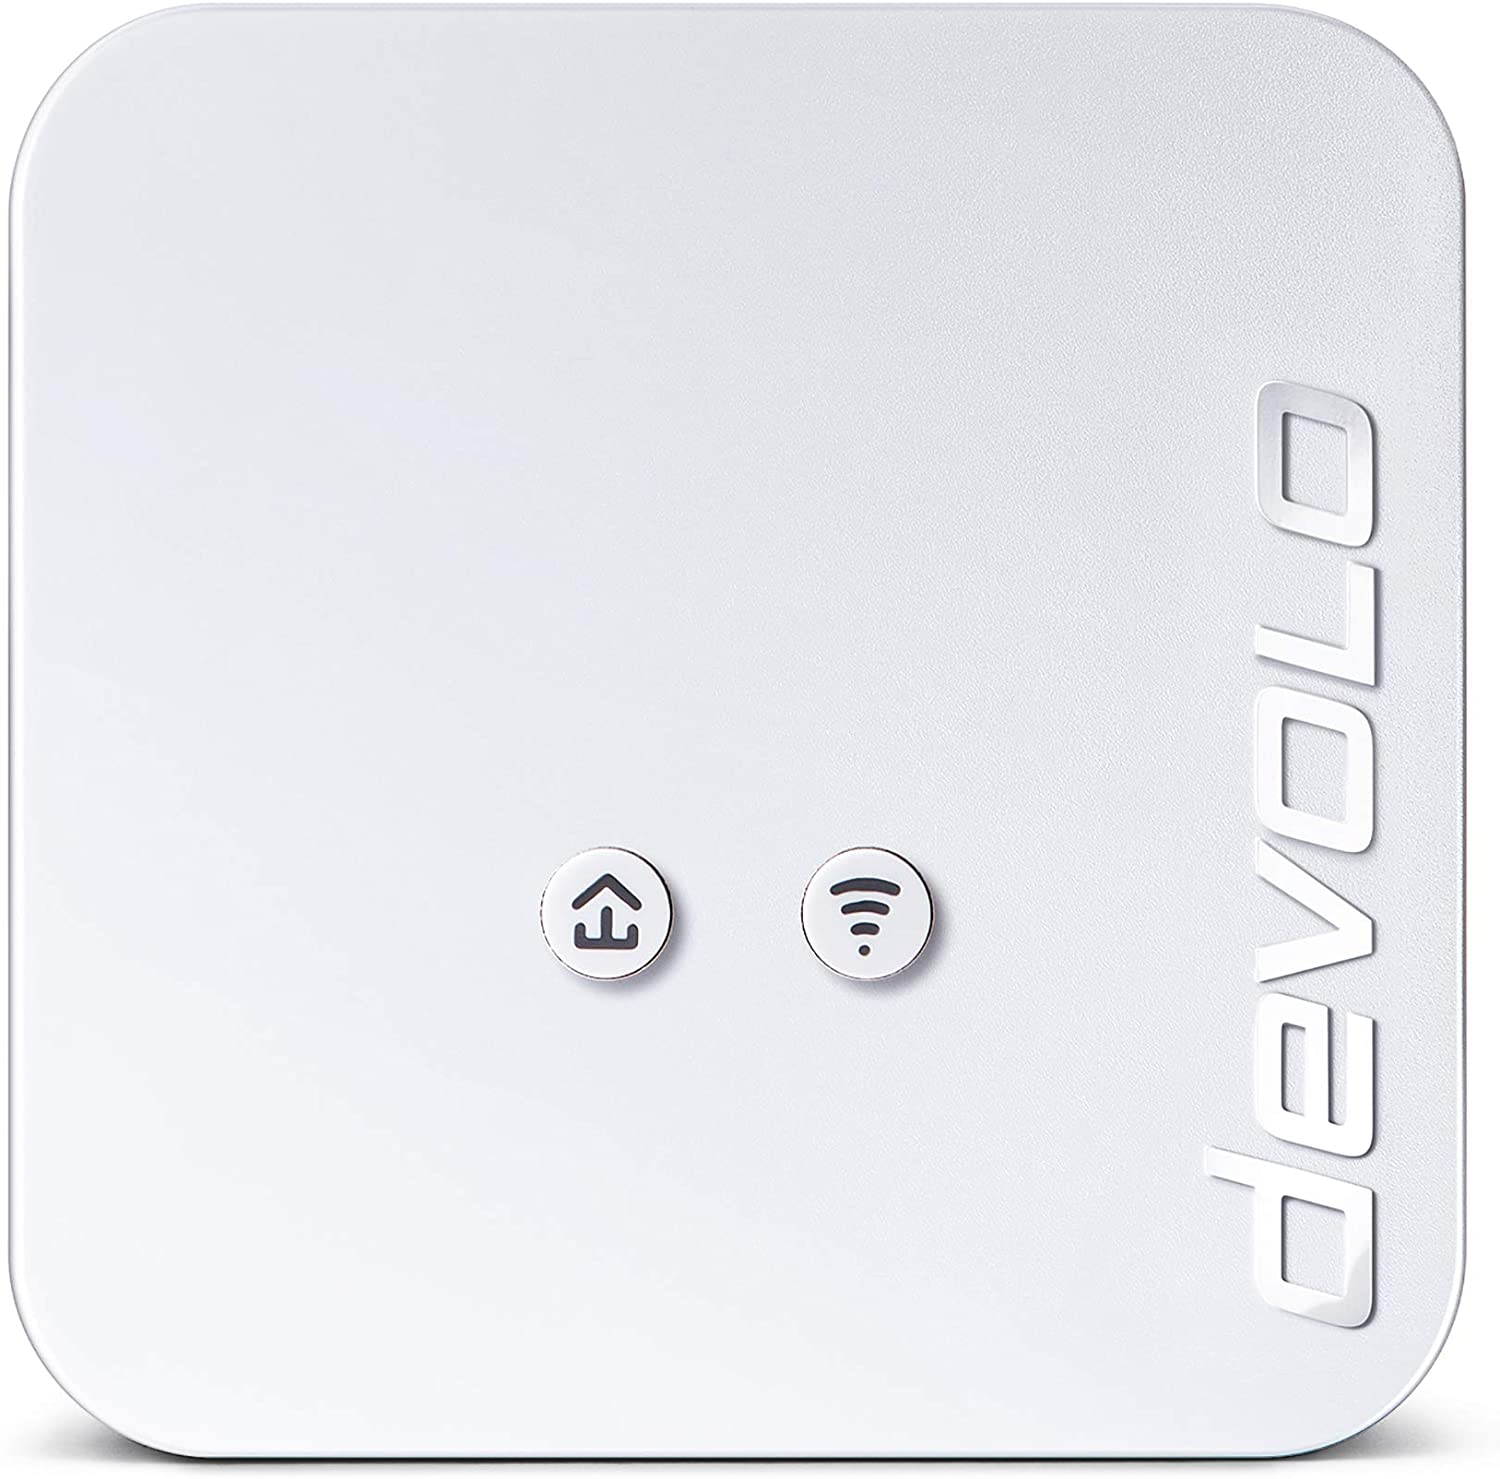 Devolo 9624 - Adaptadores de Red Powerline (WiFi, 802.11b, 802.11g, 802.11n, 4.4 W, Mac OS X 10.10 Yosemite), Blanco